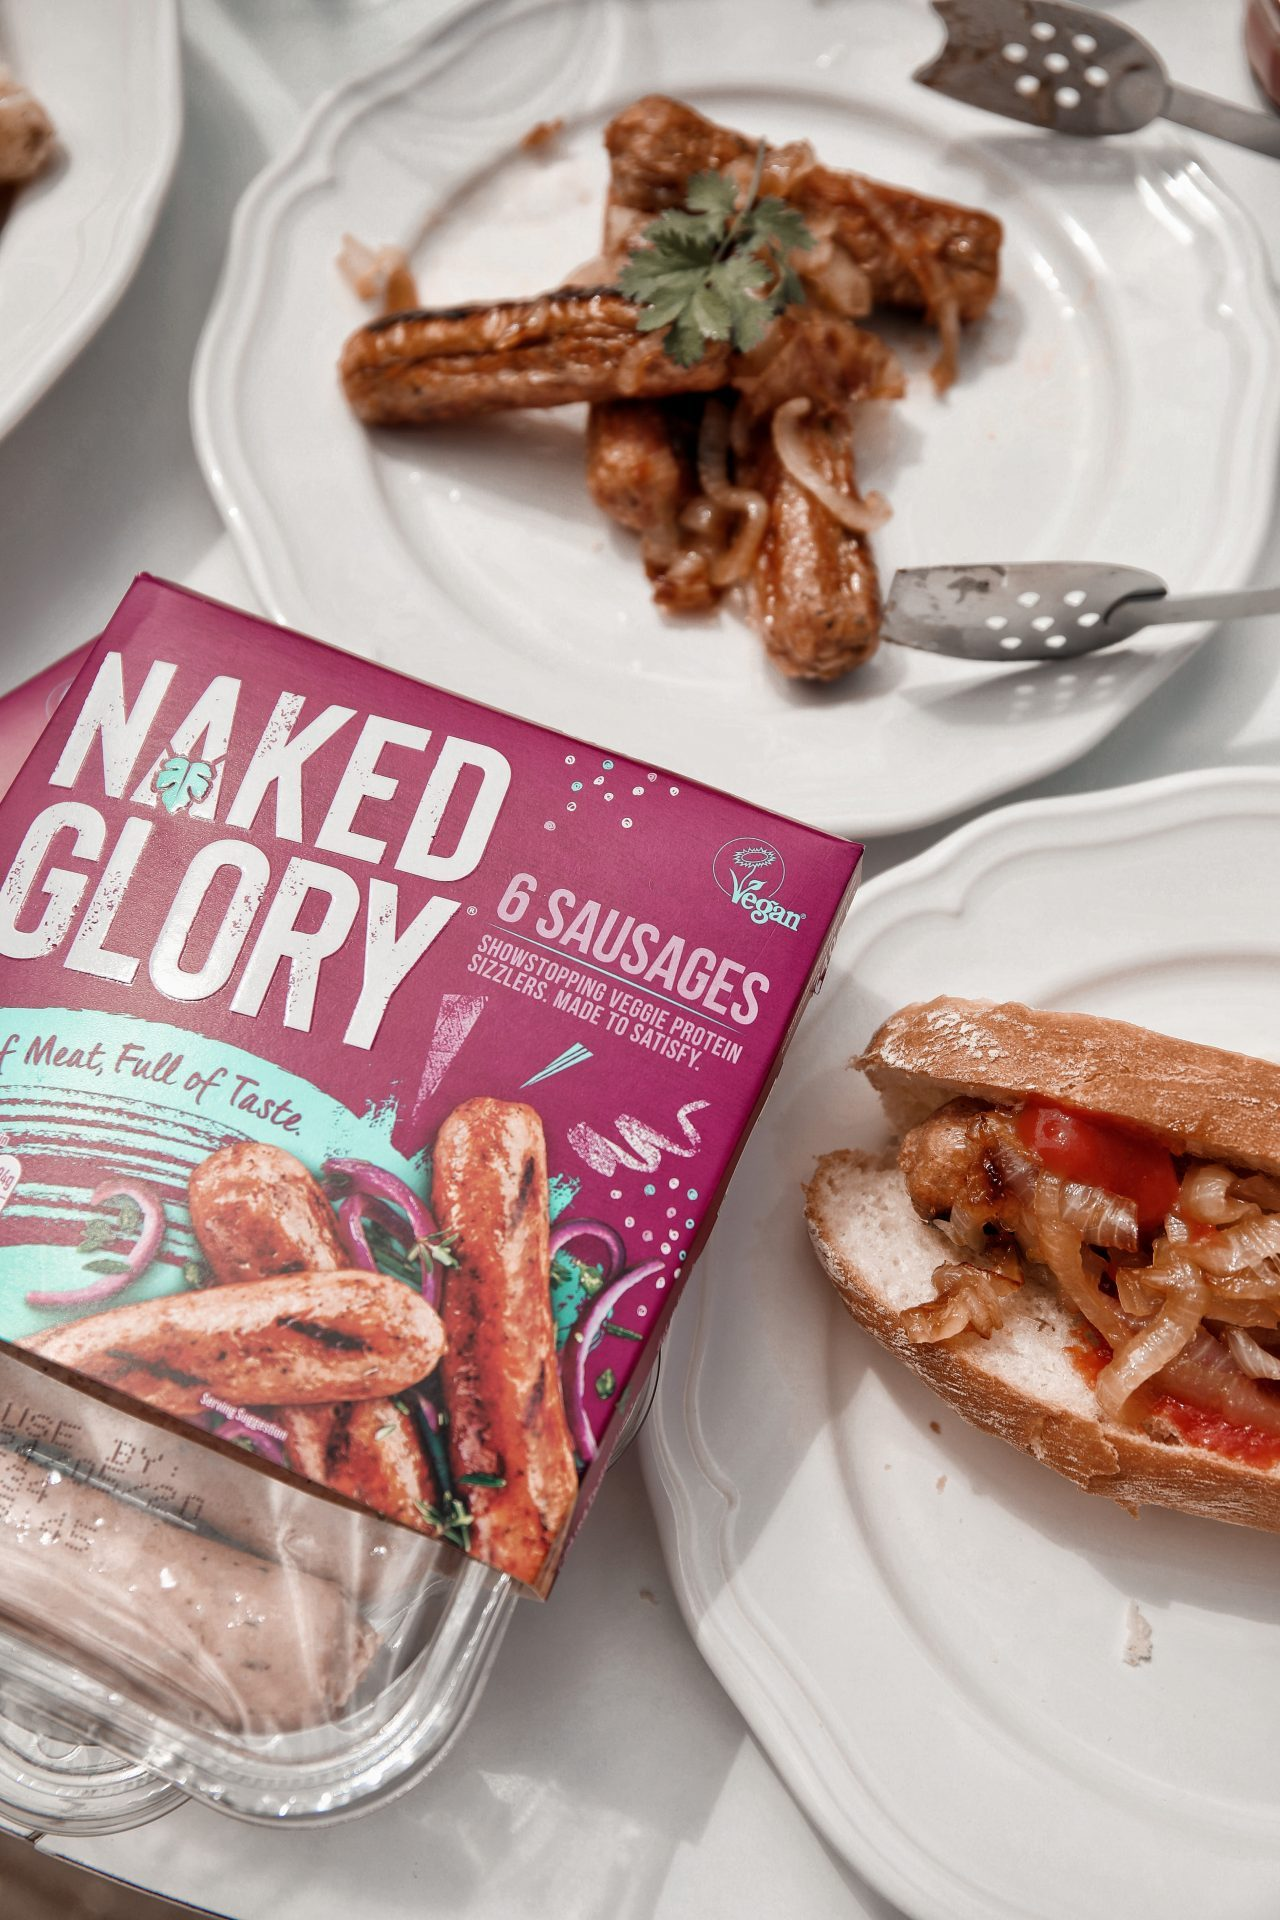 Naked Glory Sausages